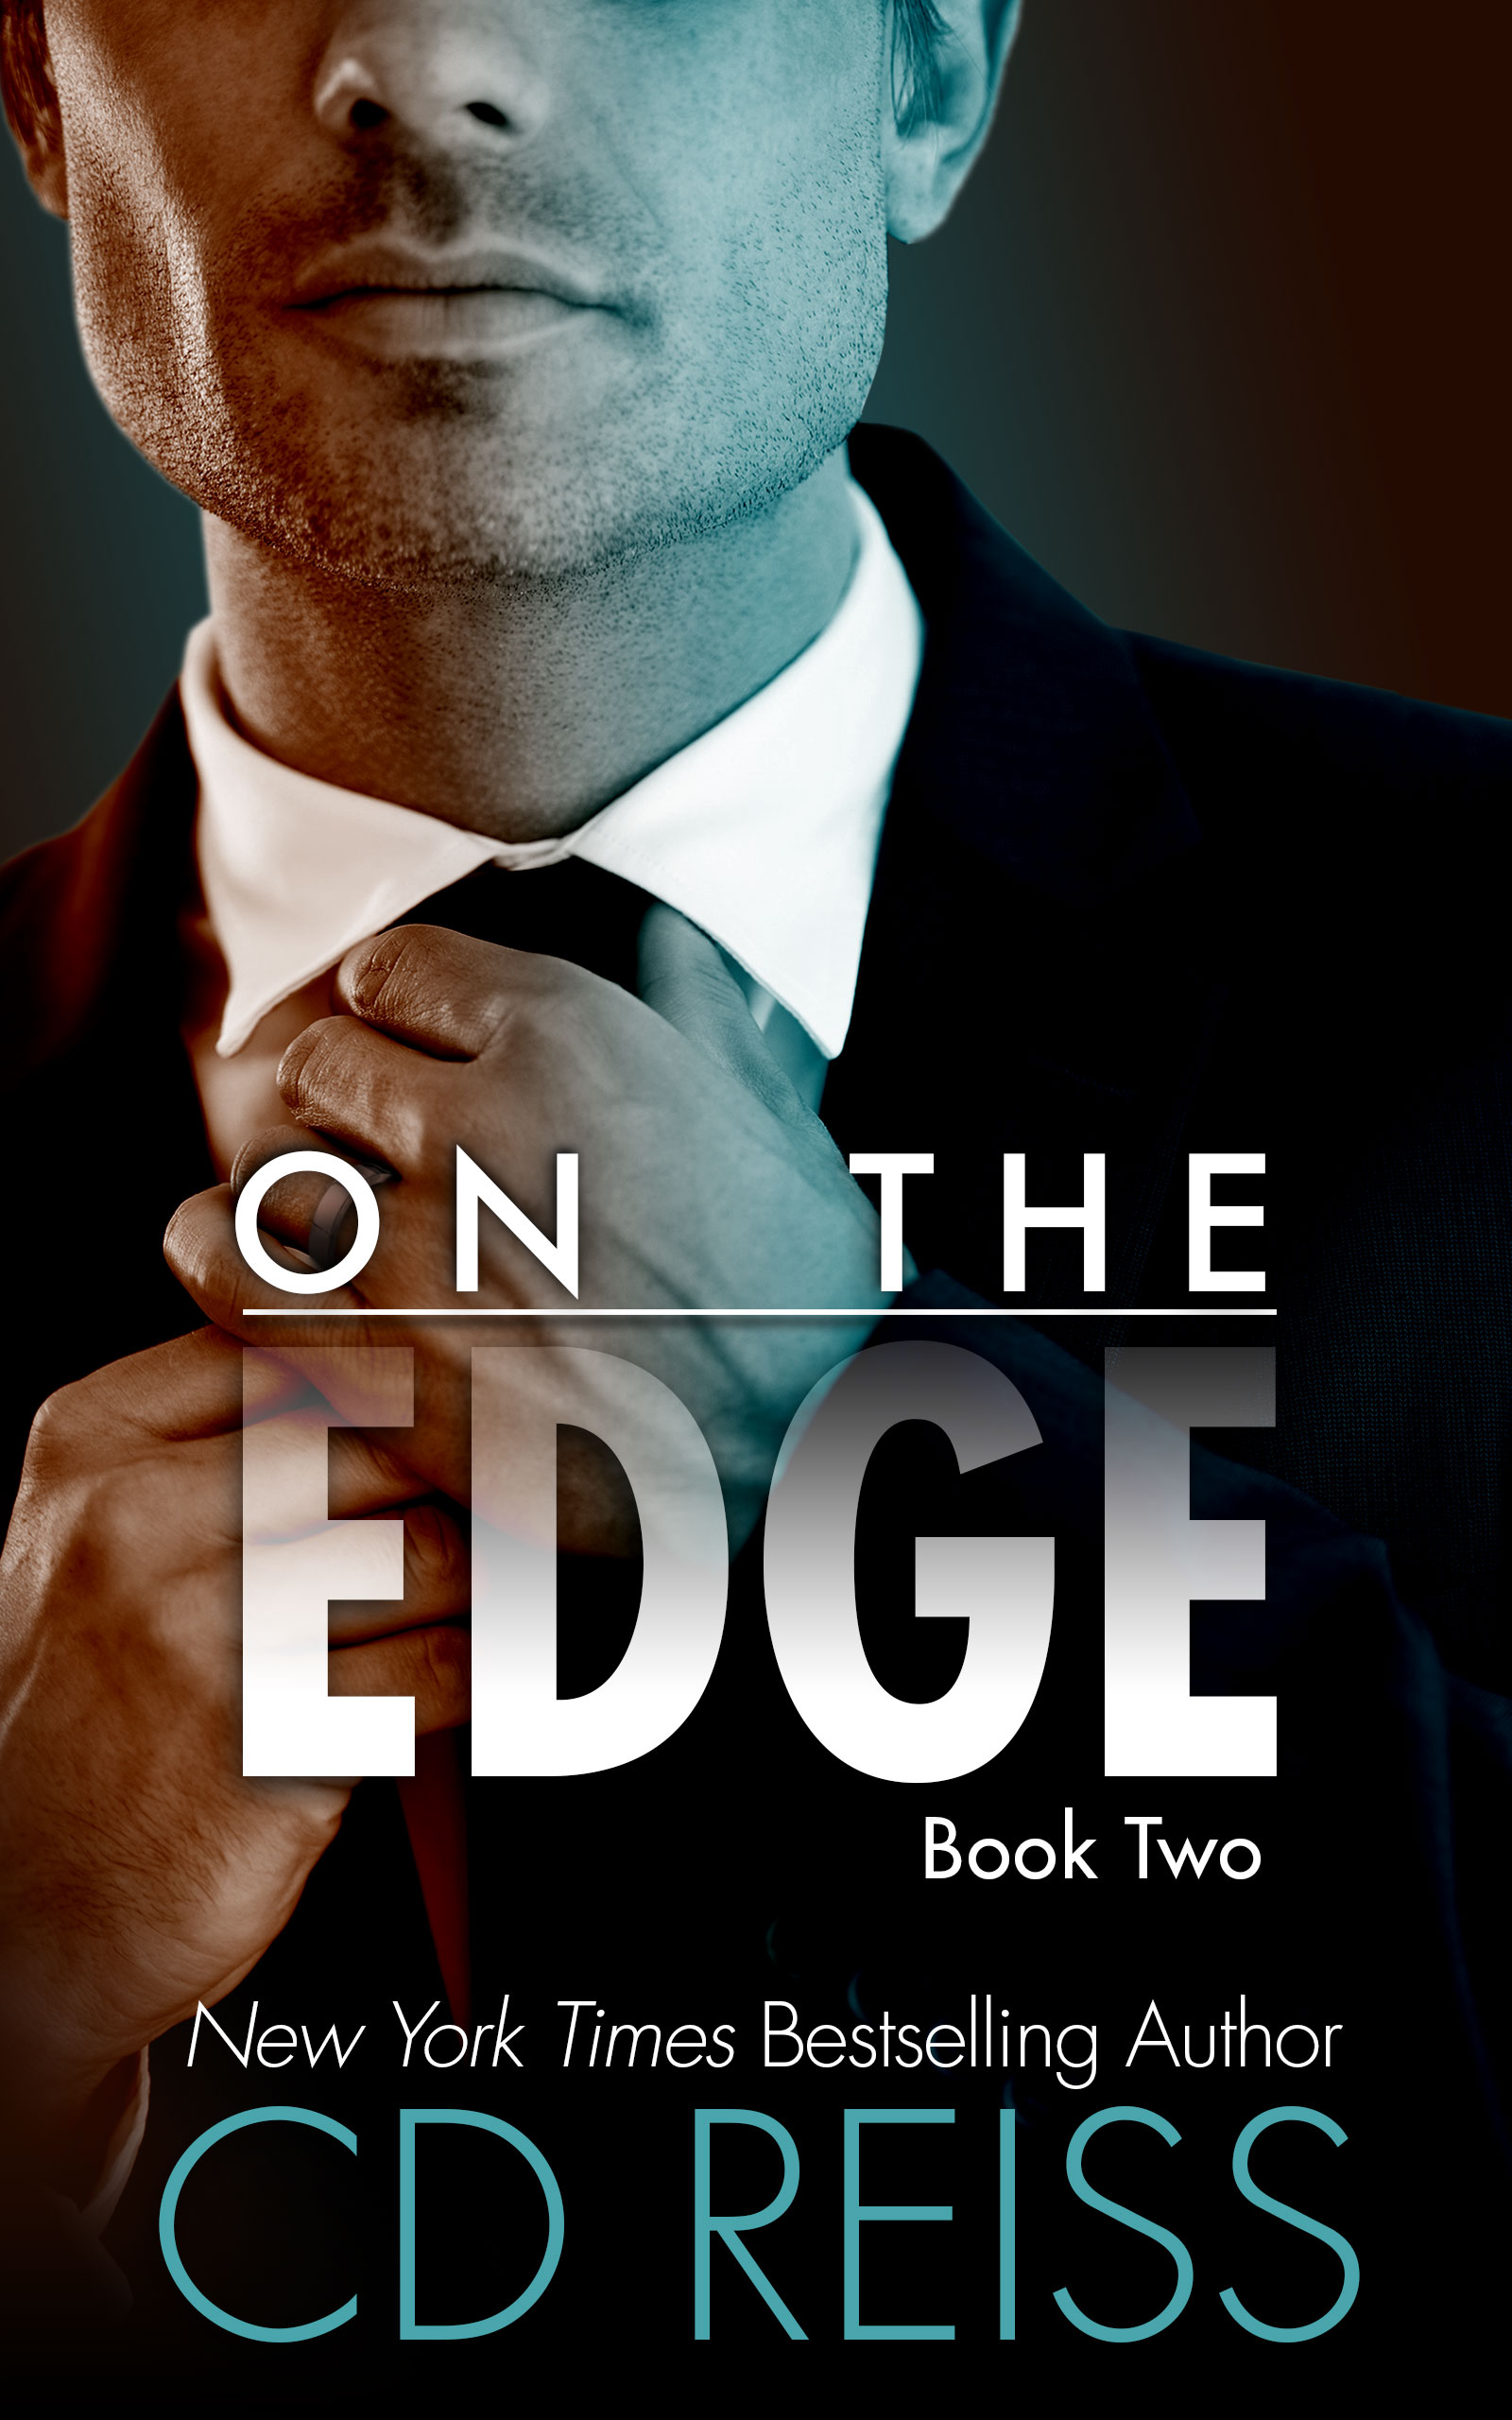 On The Edge, book two of the new Edge Series by New York Times bestselling Romance Author CD Reiss